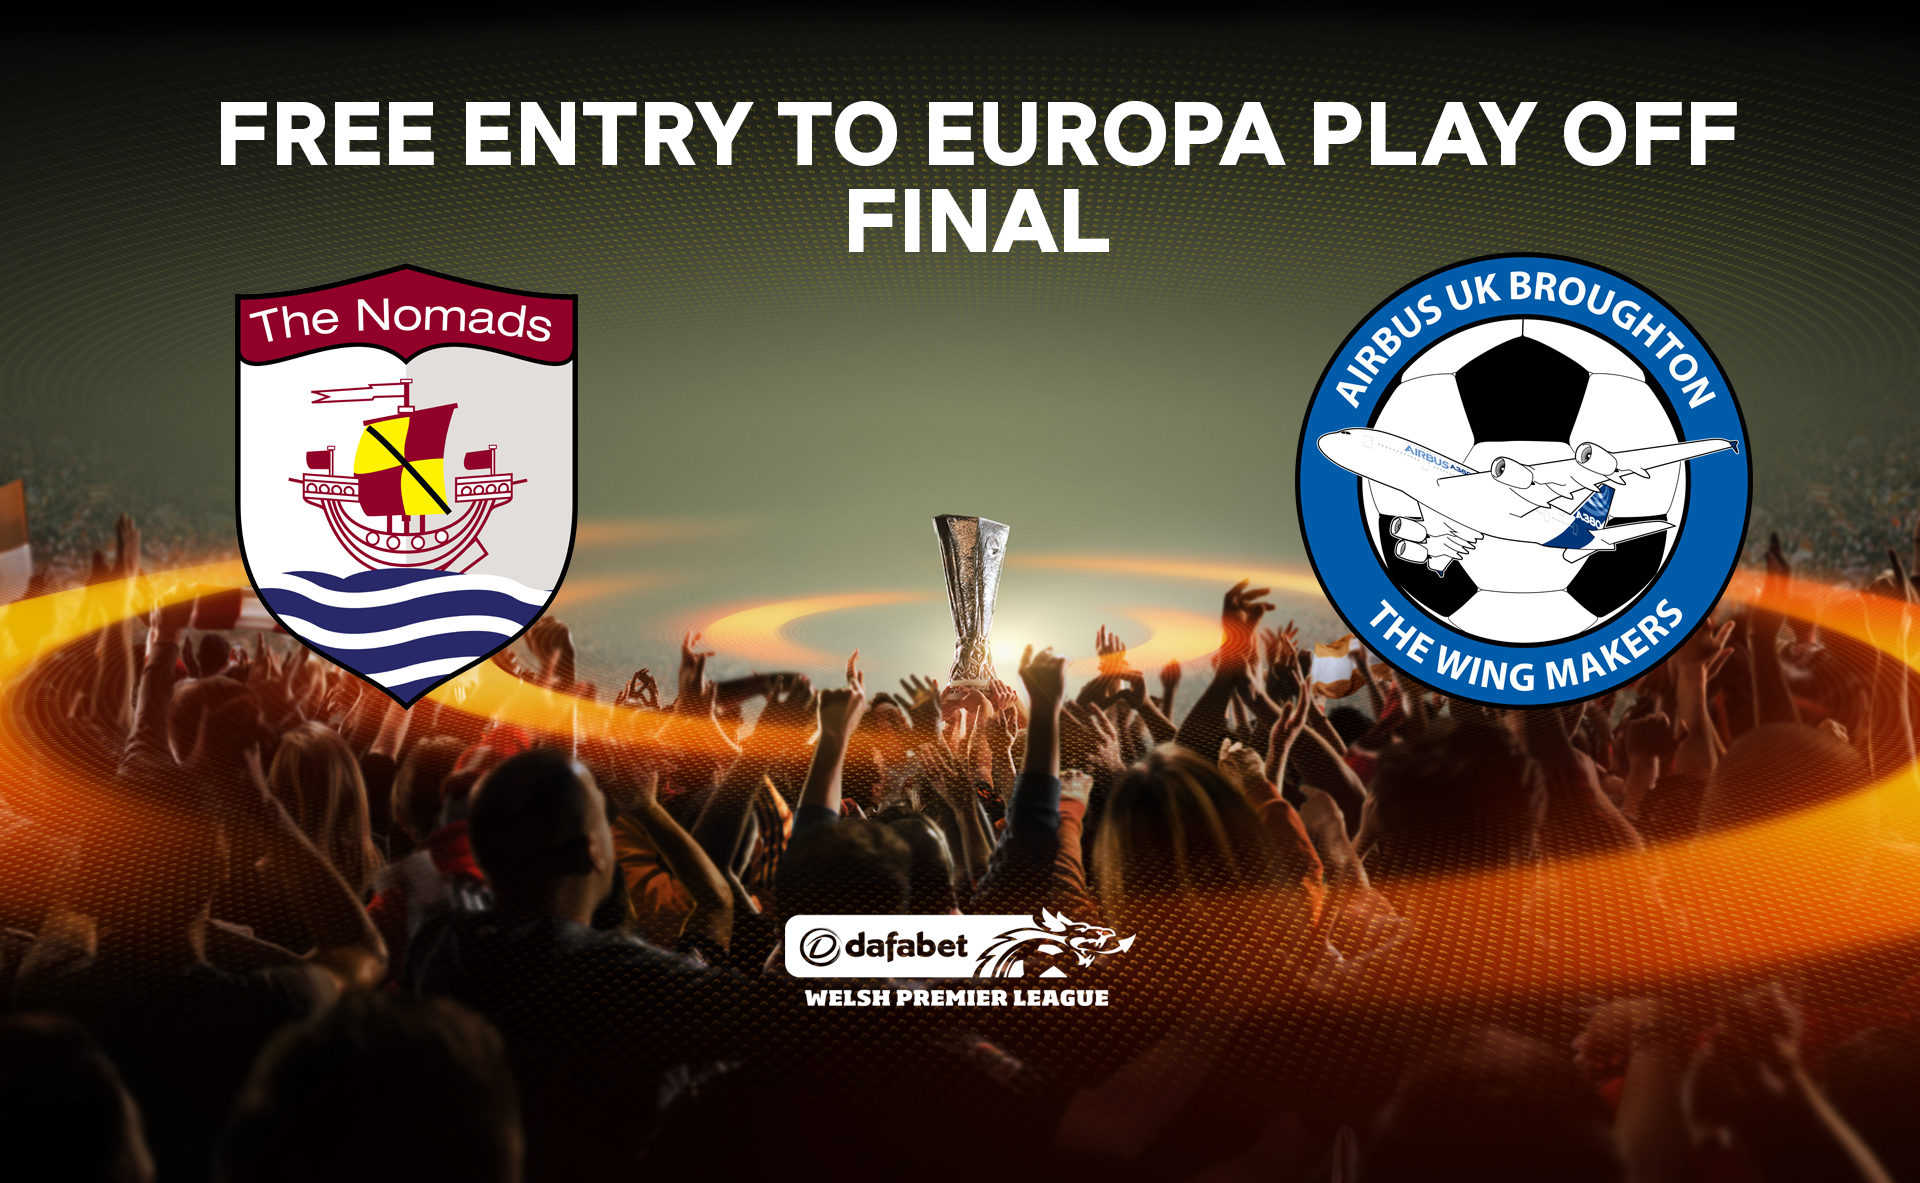 Free entry to Europa Play Off Final